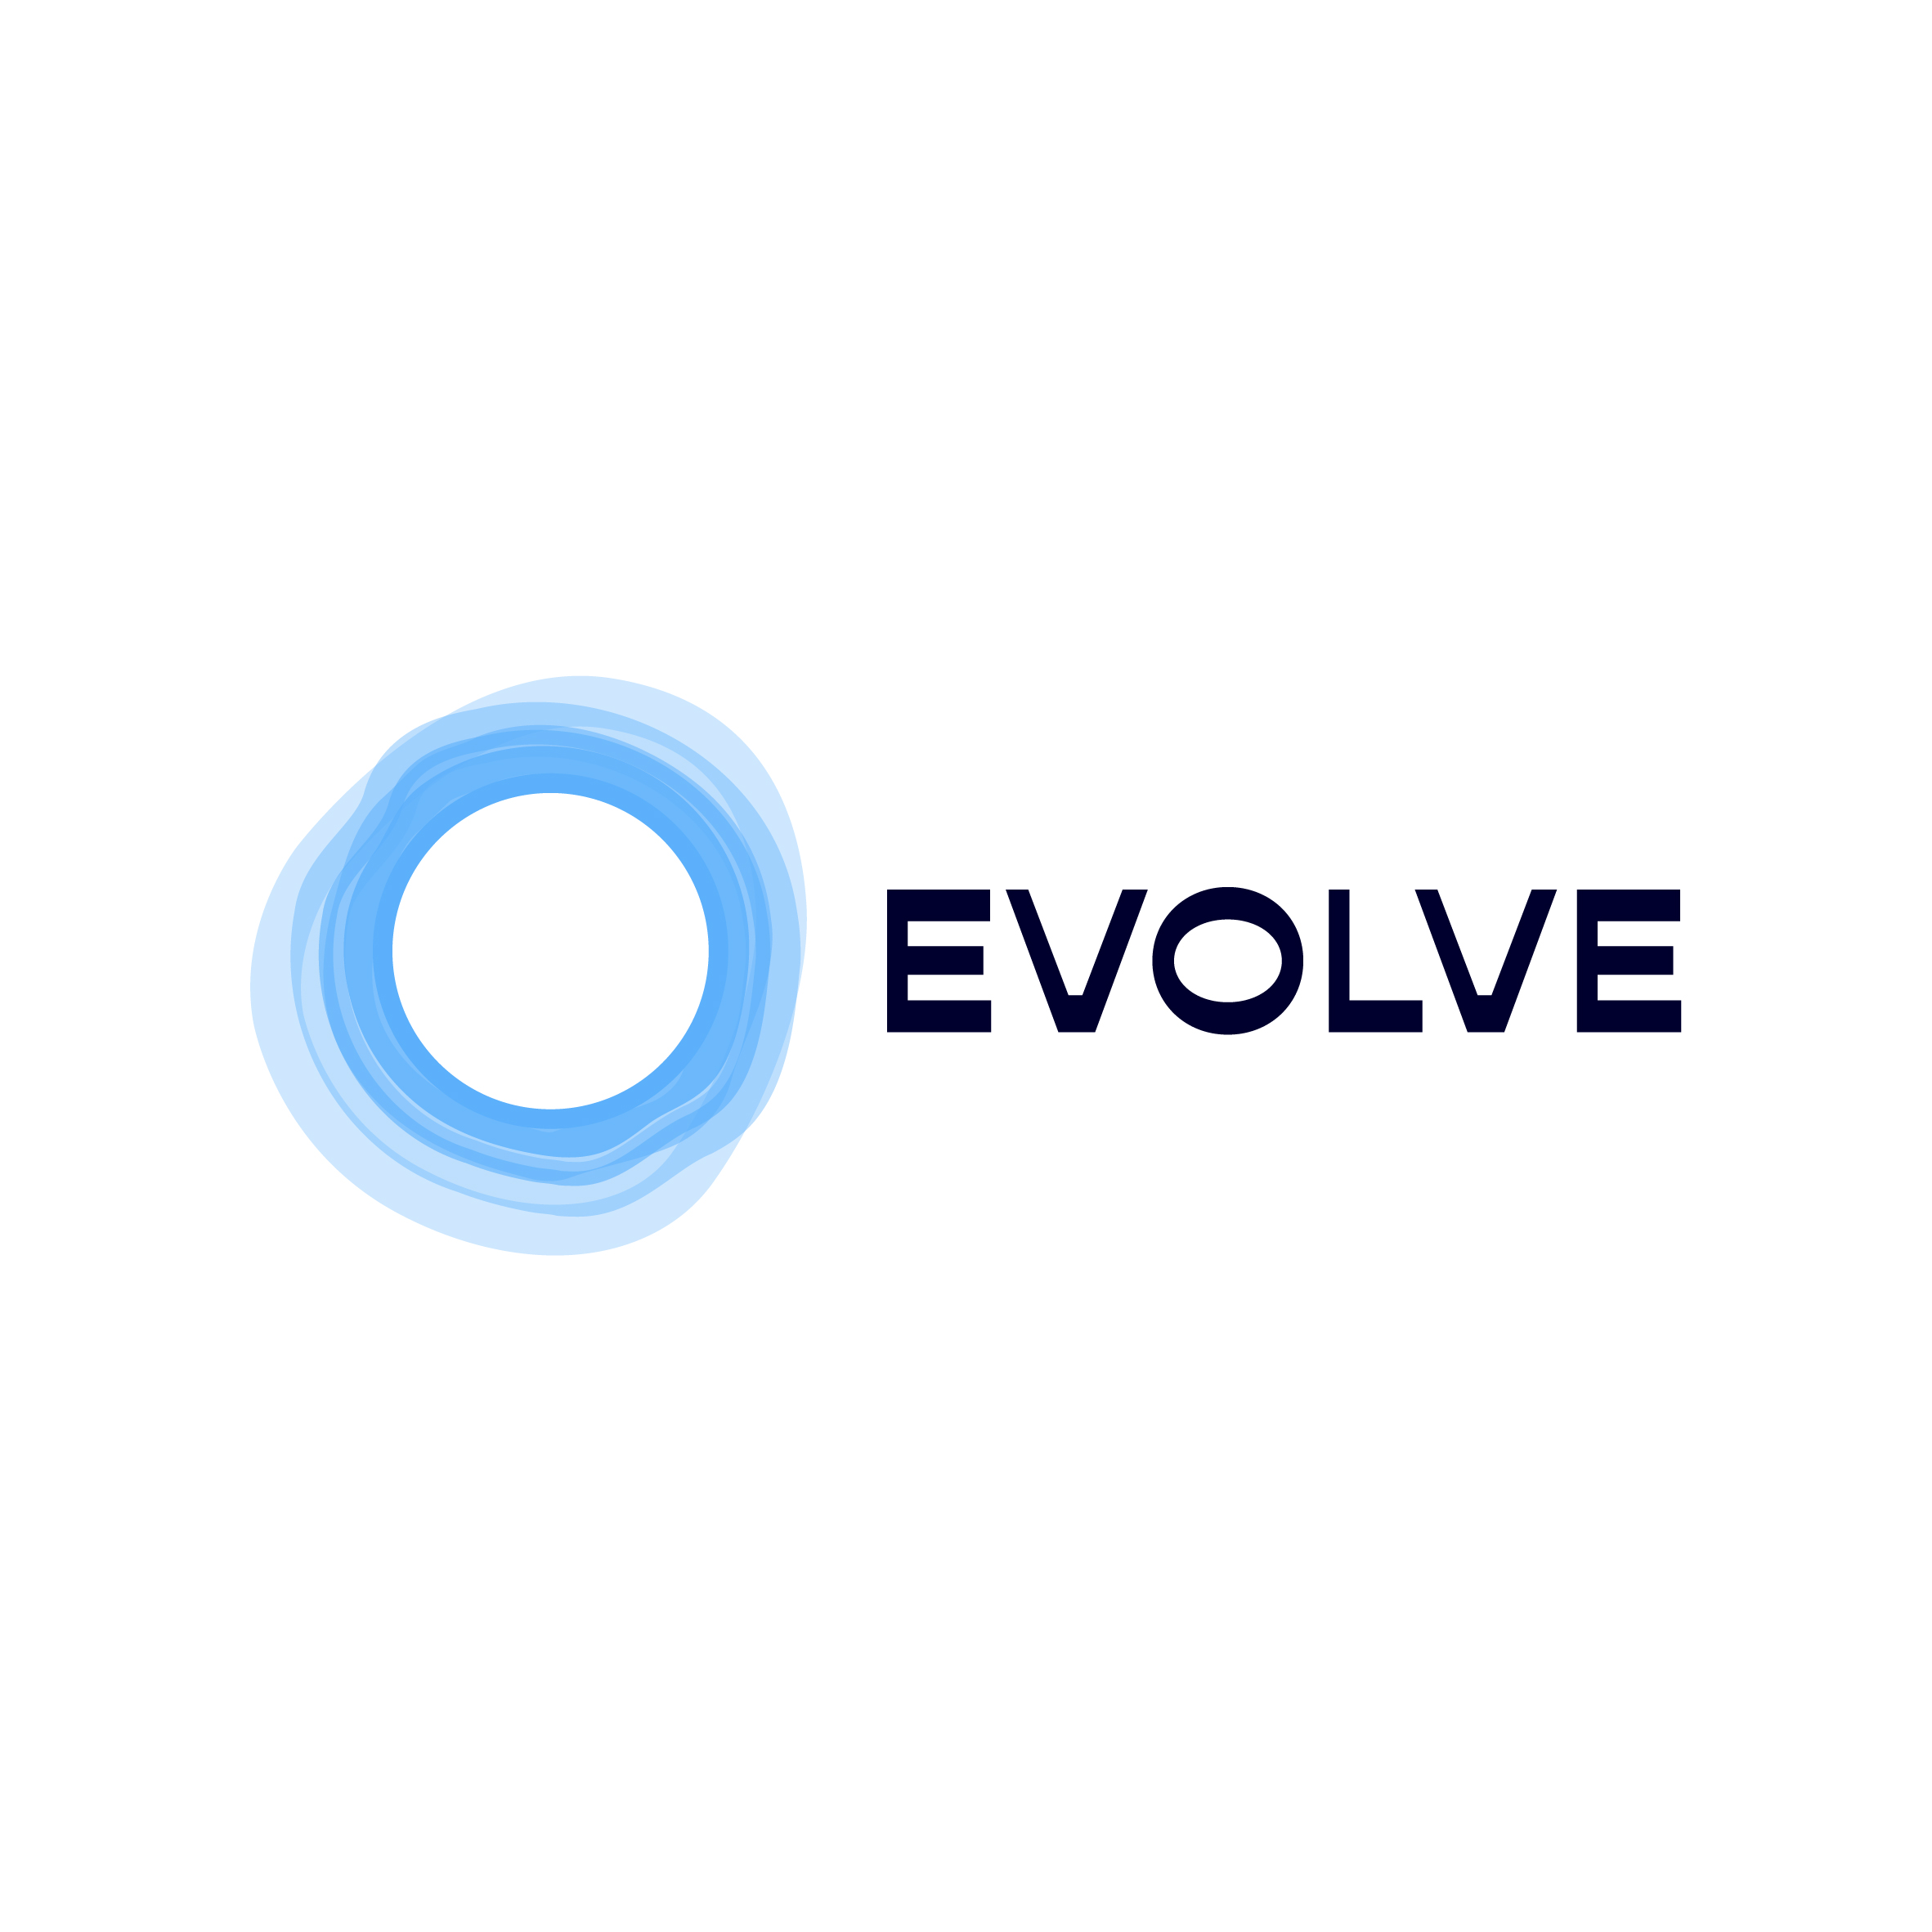 Evolve to distribute Saphetor NGS solutions